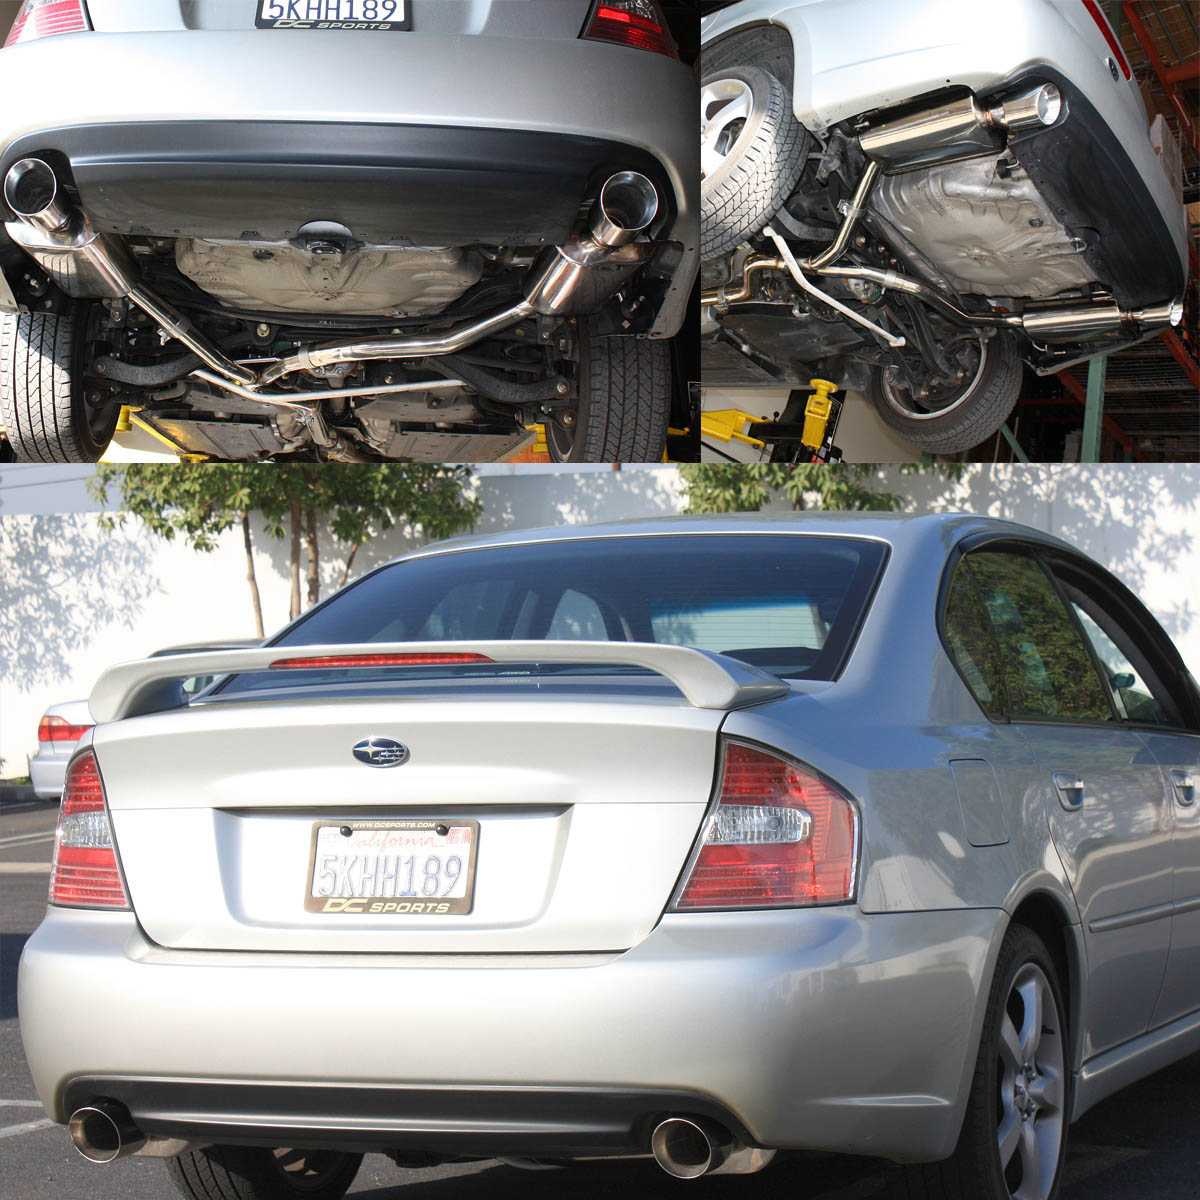 for 2005 to 2009 subaru legacy bl bp gt 2 5l dual 4 path muffler tip catback exhaust system 06 07 08